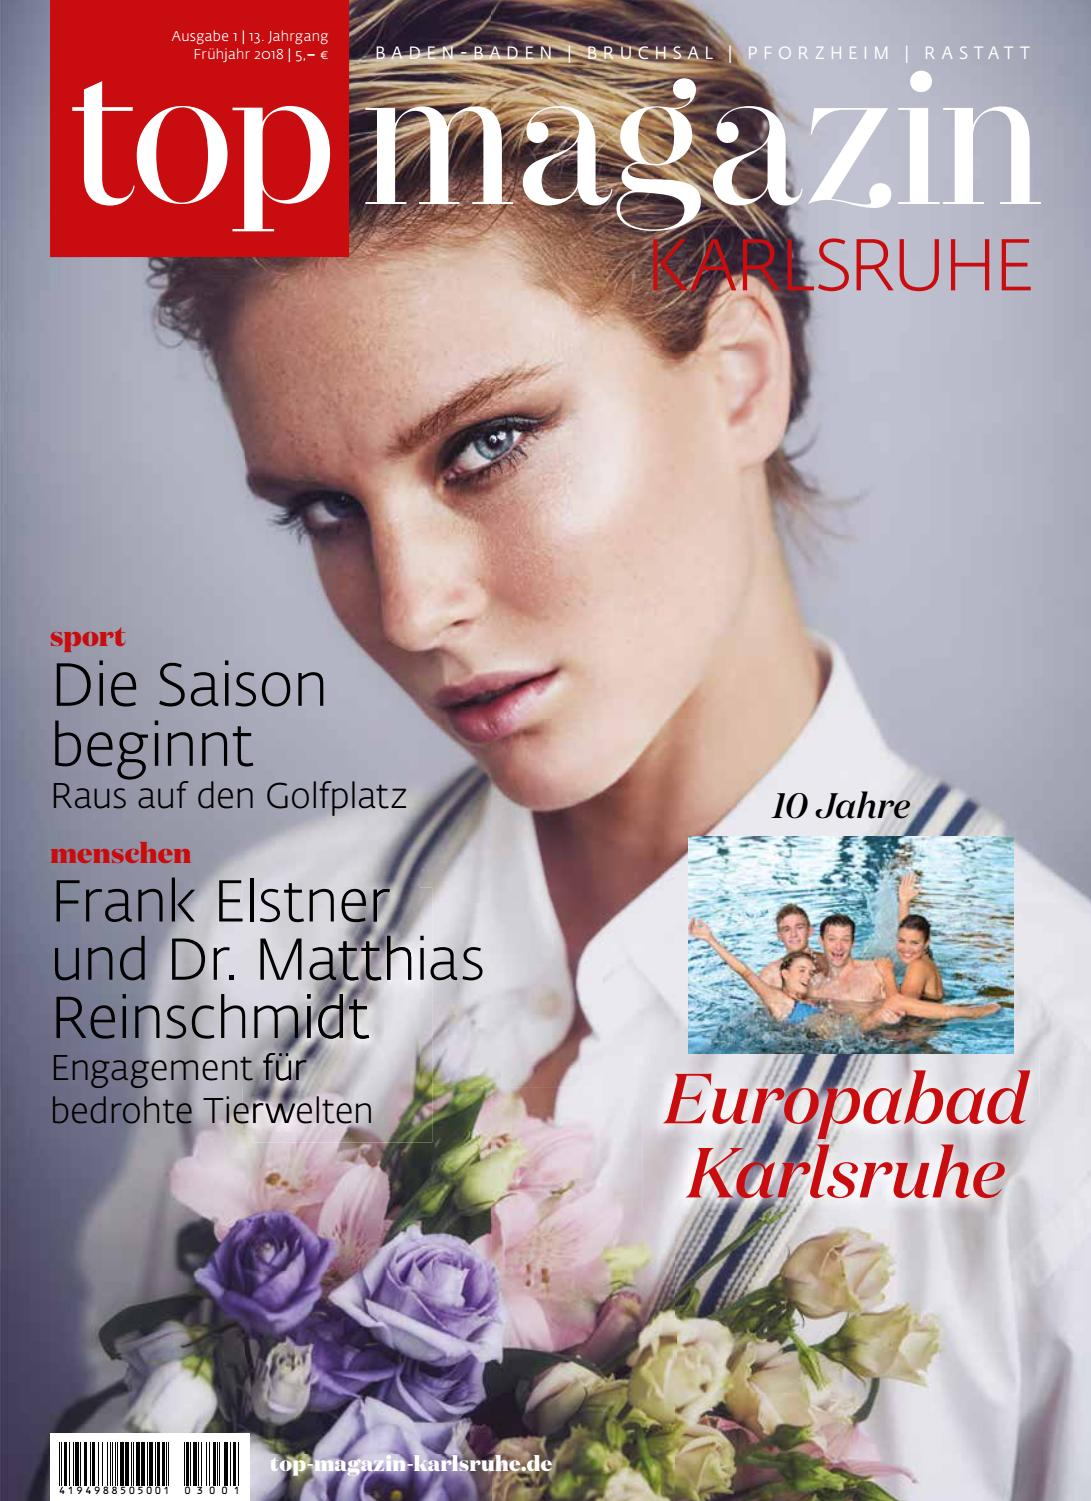 Top Magazin Karlsruhe Frühling 2018 by Top Magazin - issuu